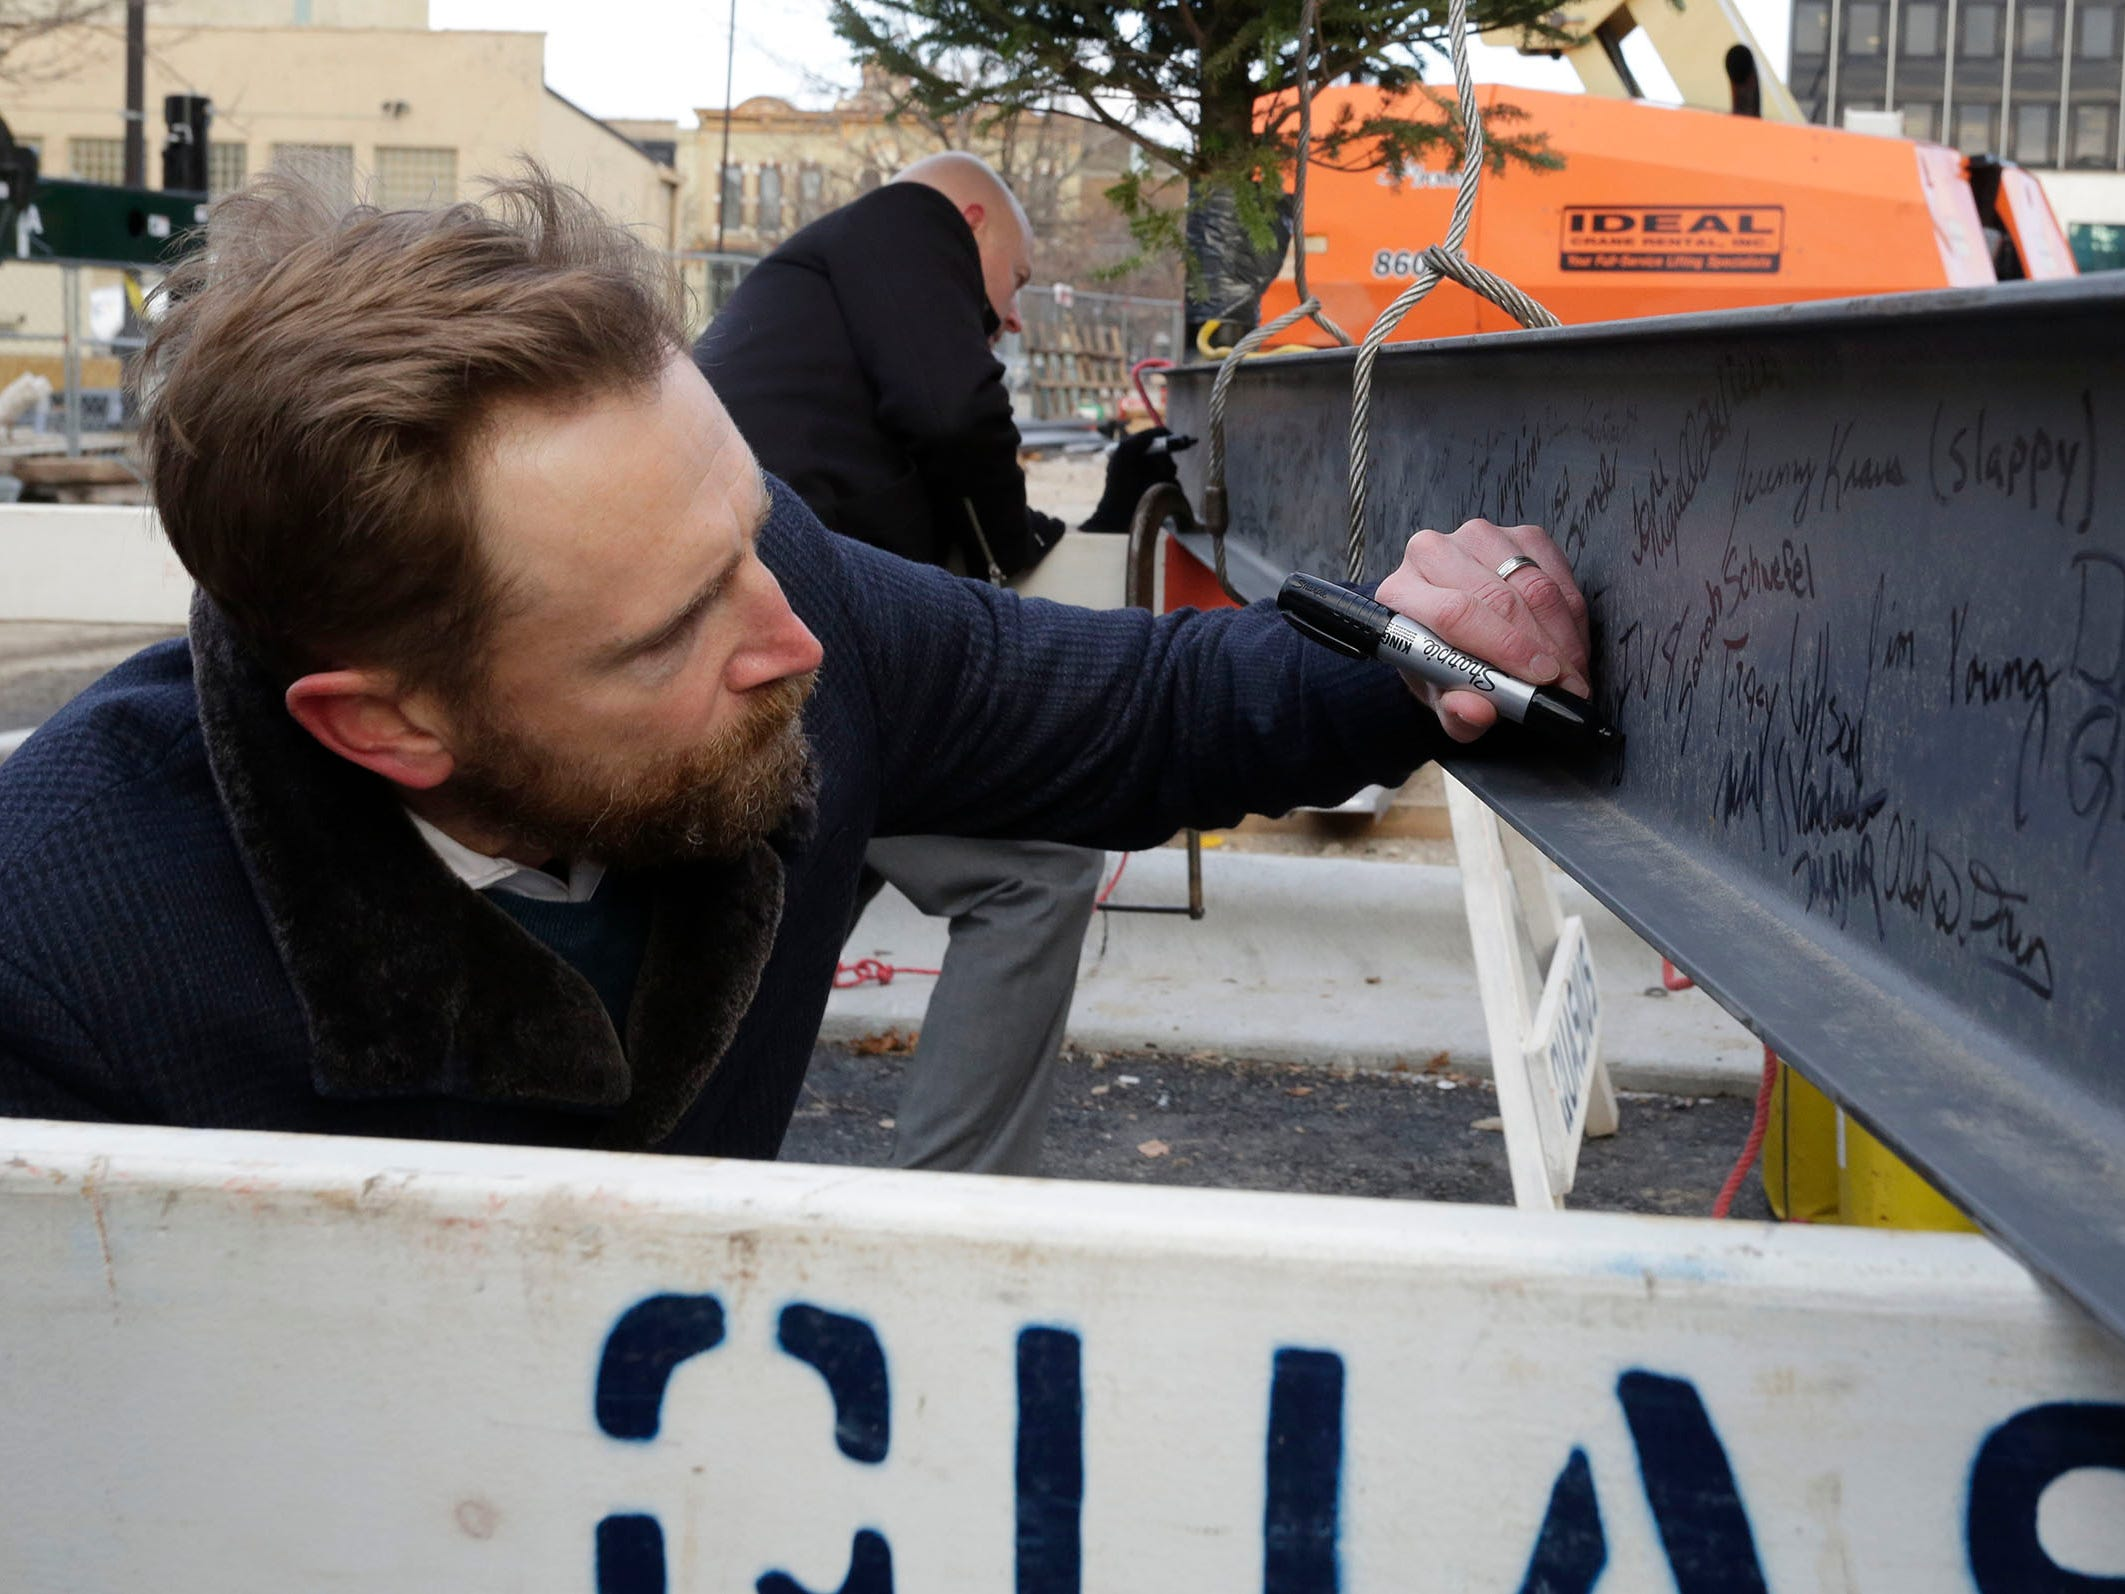 Quasius President Matt Quasius signs the last structural beam at Sheboygan City Hall during a topping off ceremony for the renovation project, Wednesday, December 5, 2018, in Sheboygan, Wis.